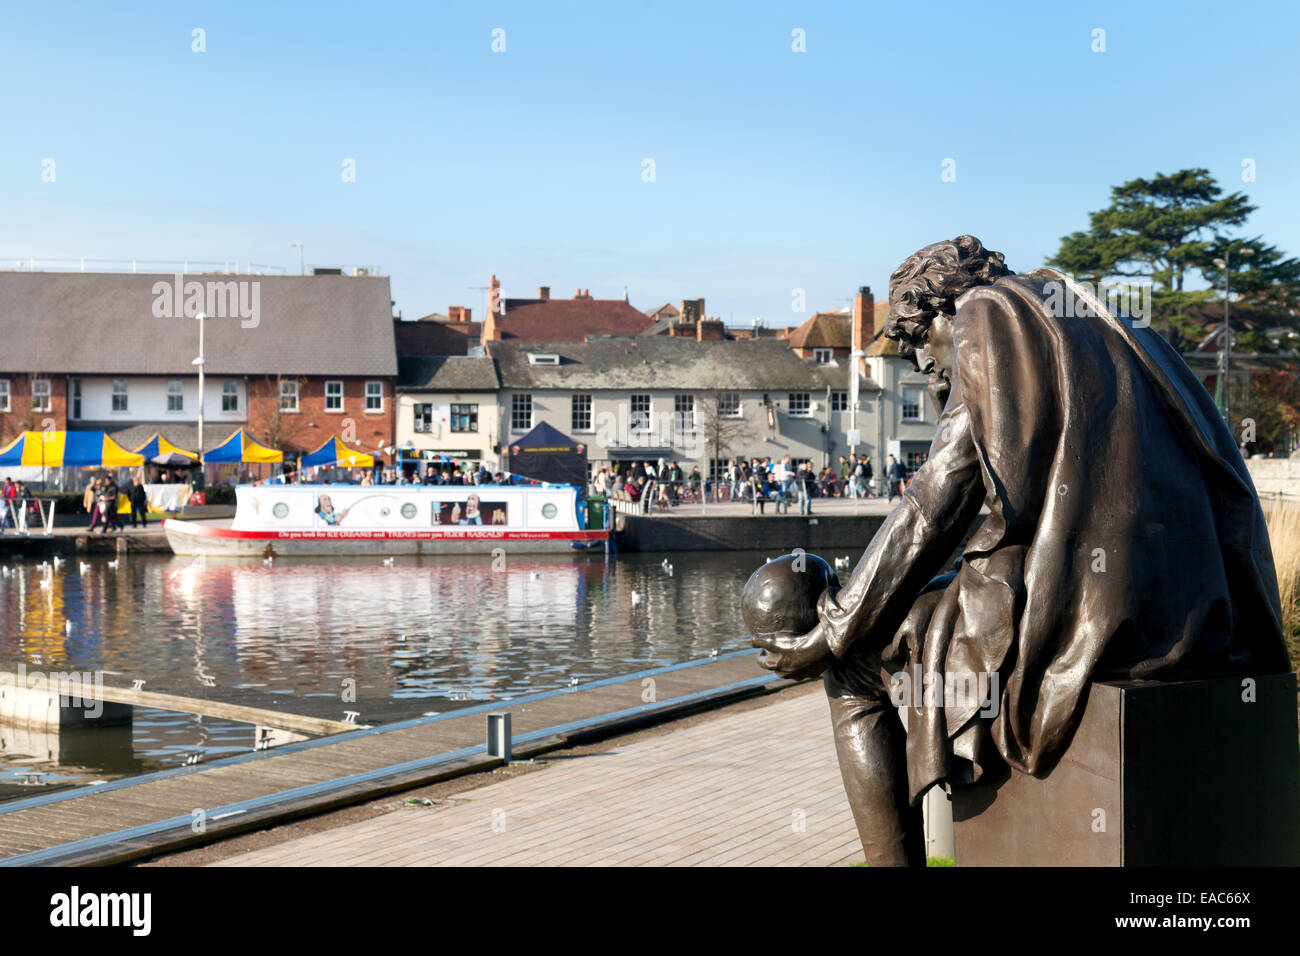 Shakespeare Hamlet statue, by the canal, Stratford upon Avon town centre, Warwickshire England UK - Stock Image